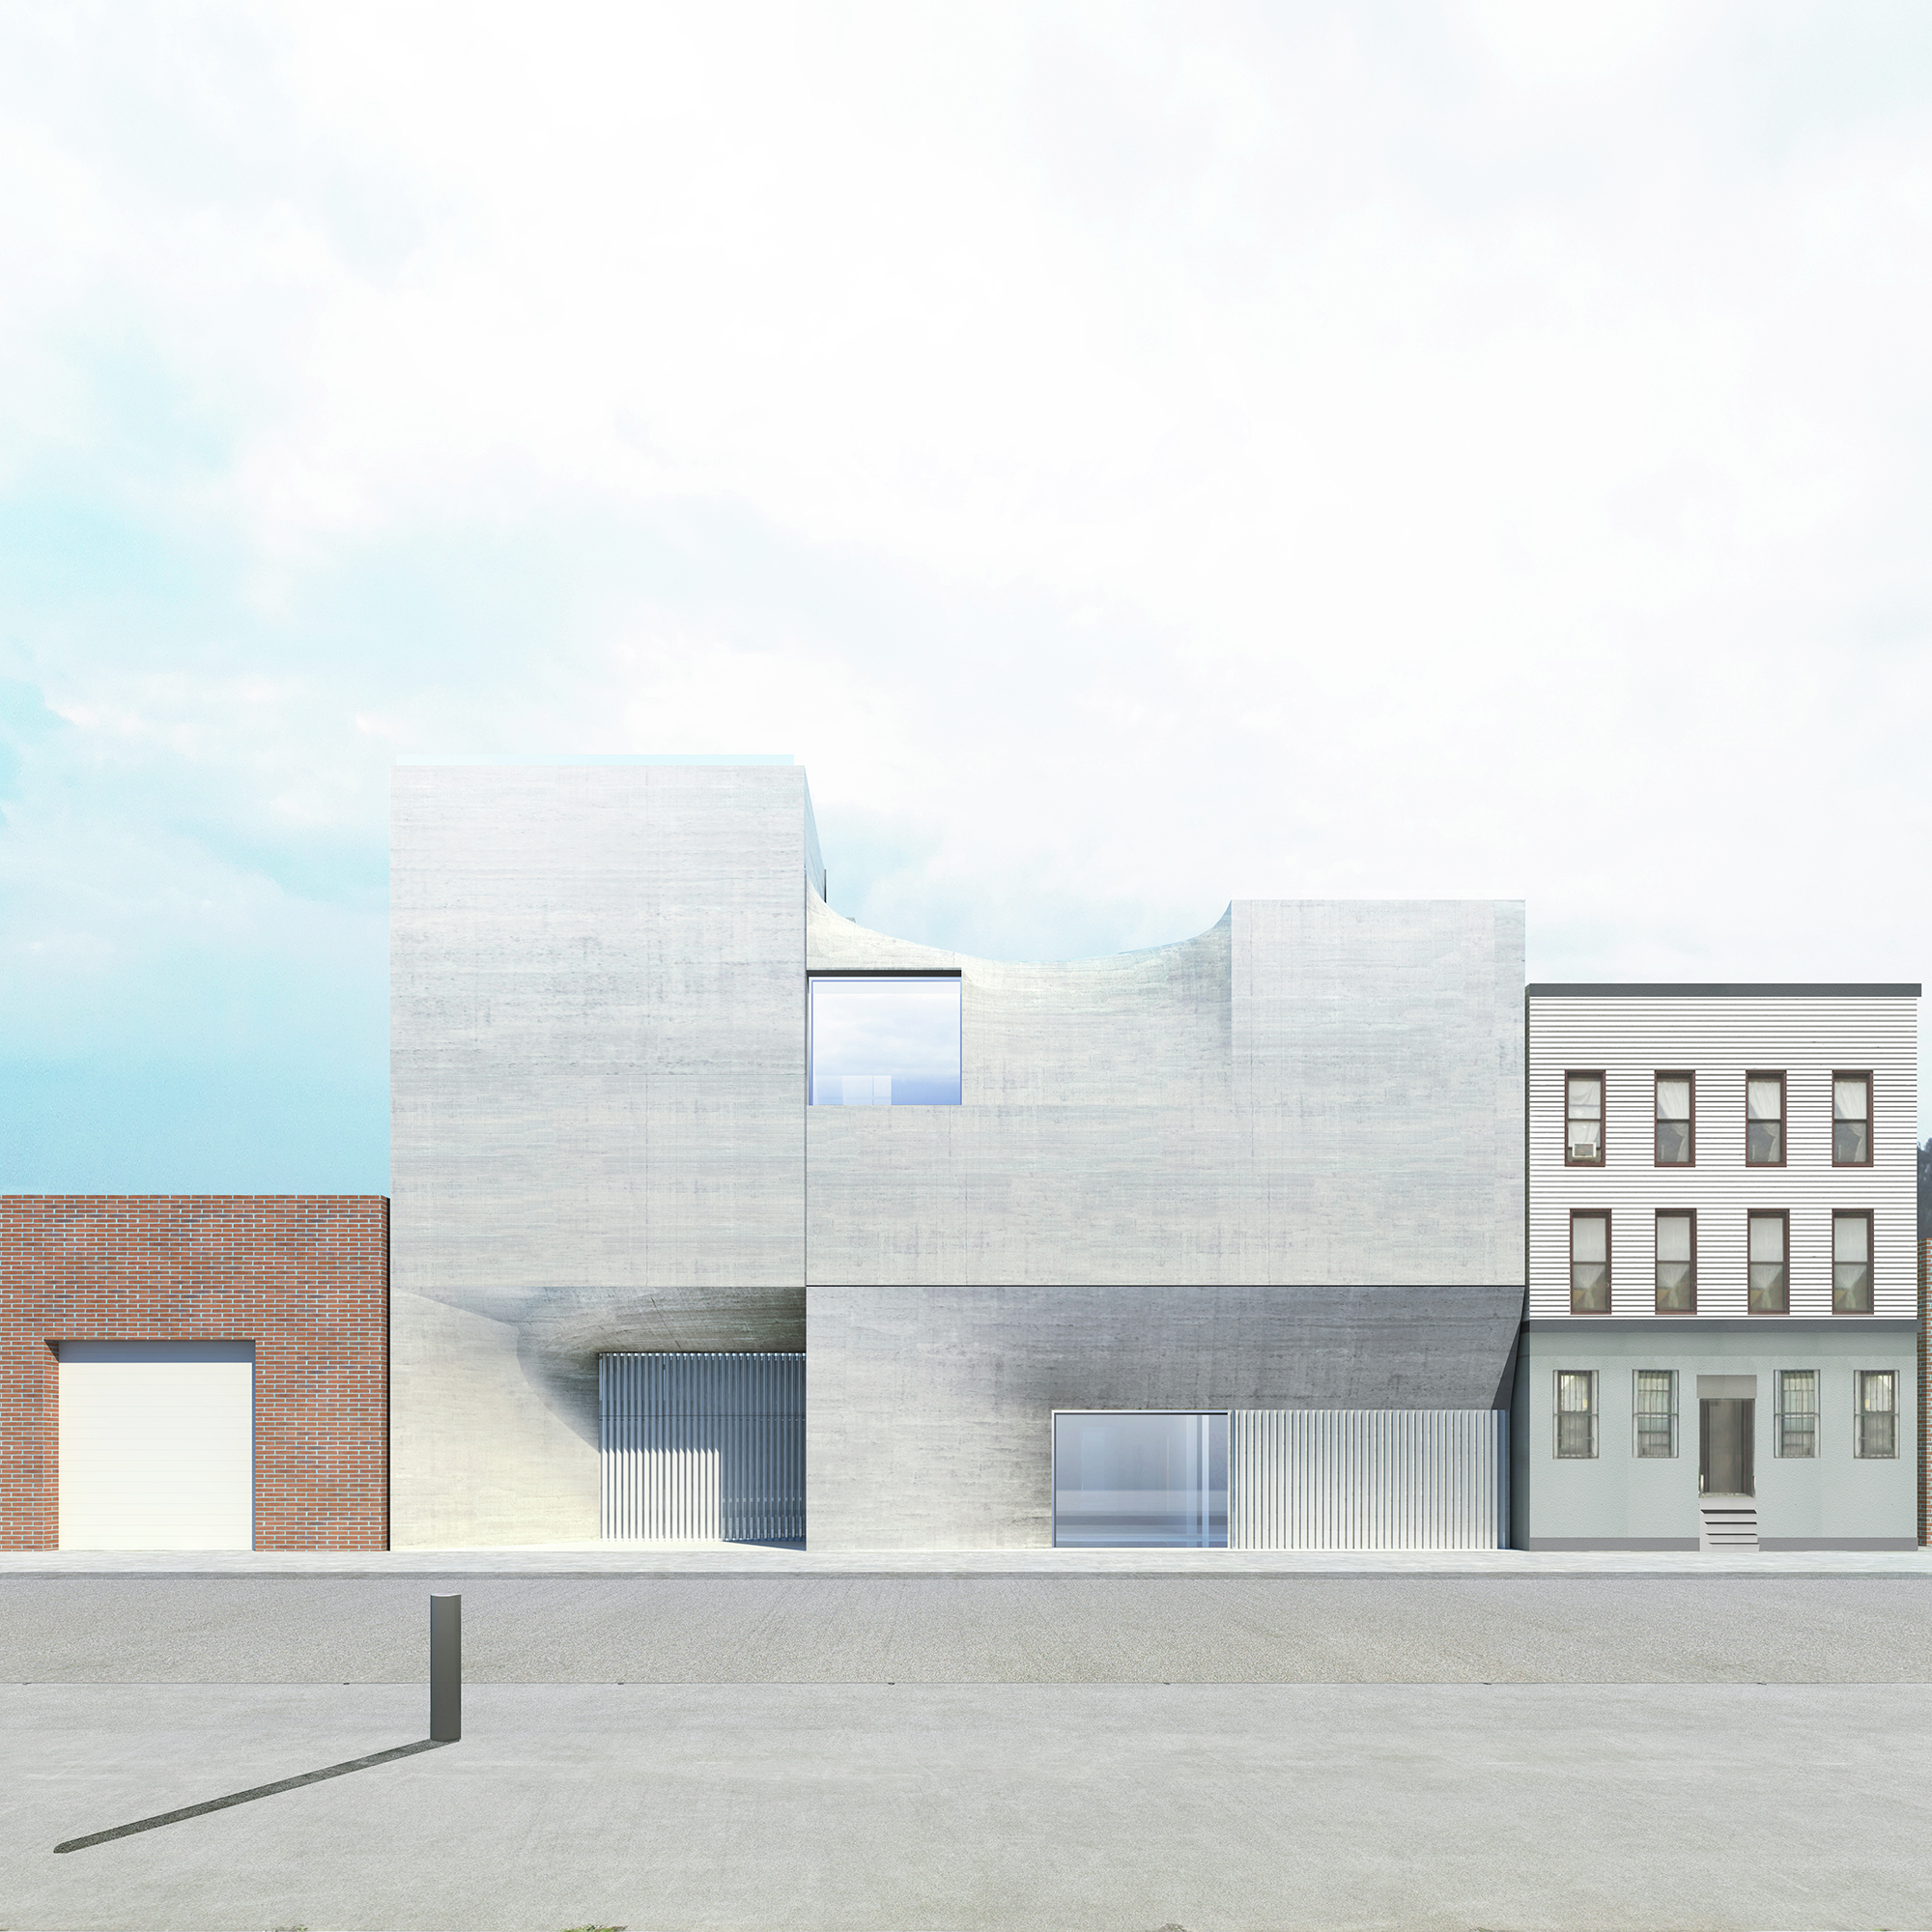 Gallery: SO-IL Reveals Plans For New Brooklyn Art Gallery